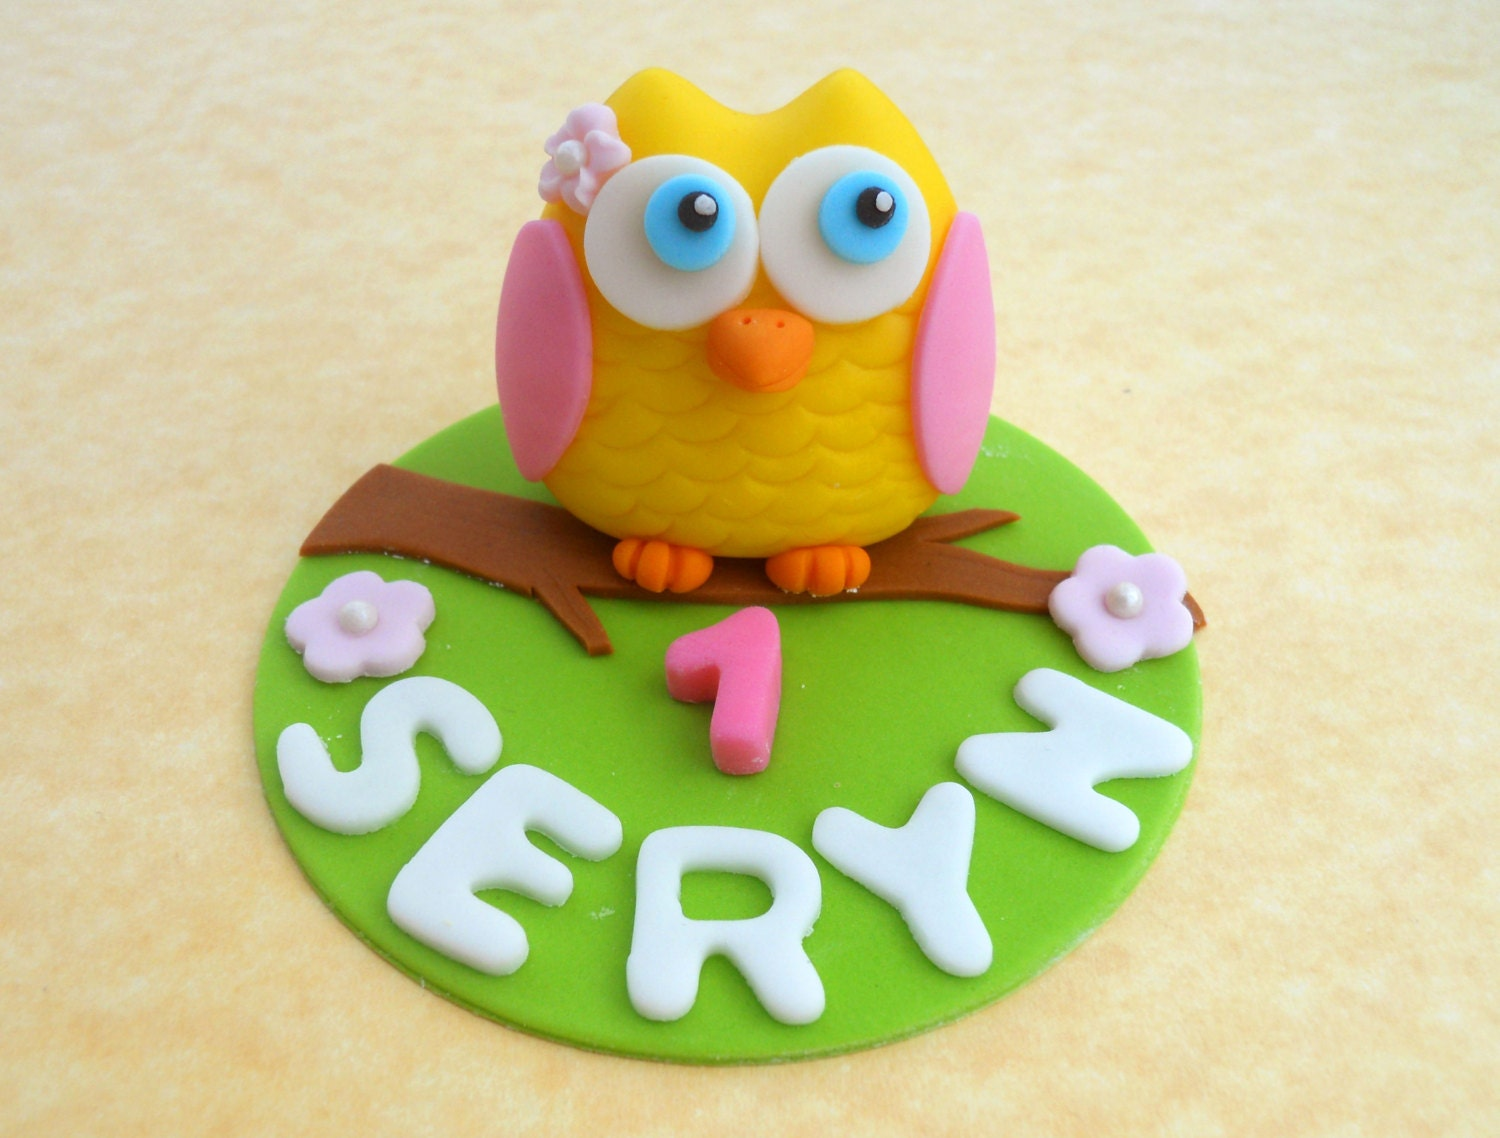 Edible Cake Image Owl : OWL Edible CAKE Topper by Sweet and Edible Catch My Party